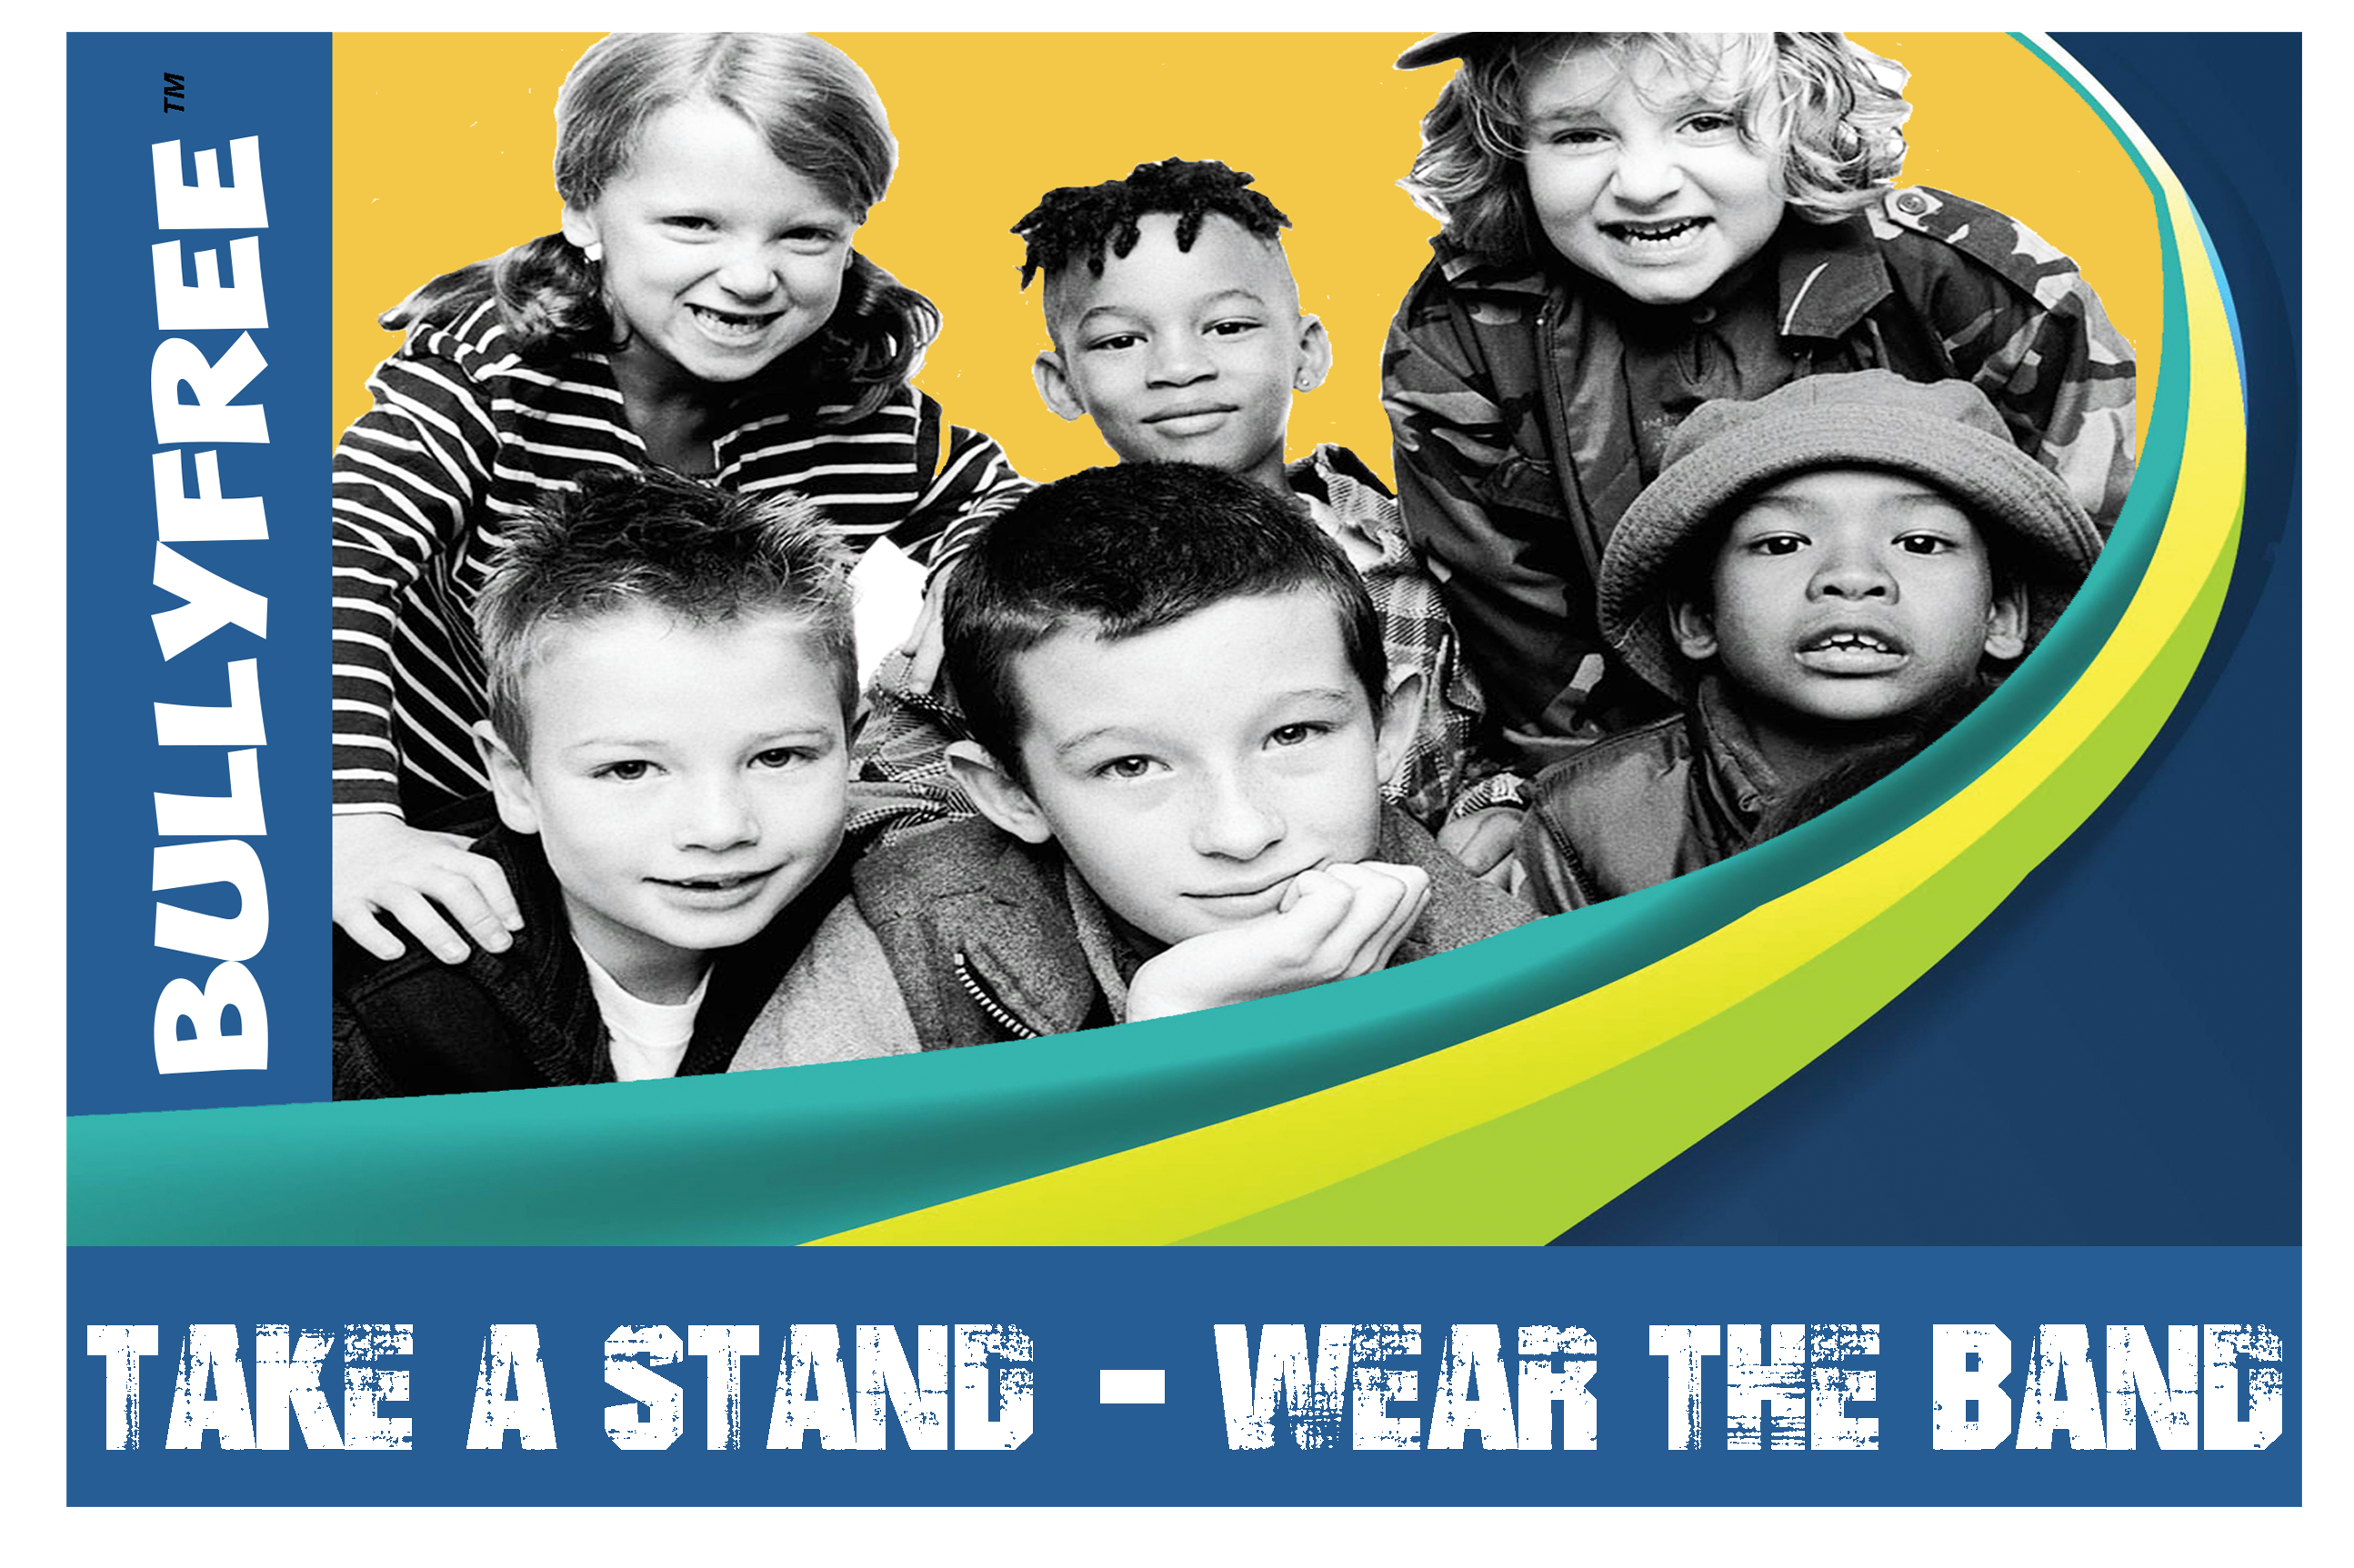 BullyFree Kids image forr BULLYFREE page